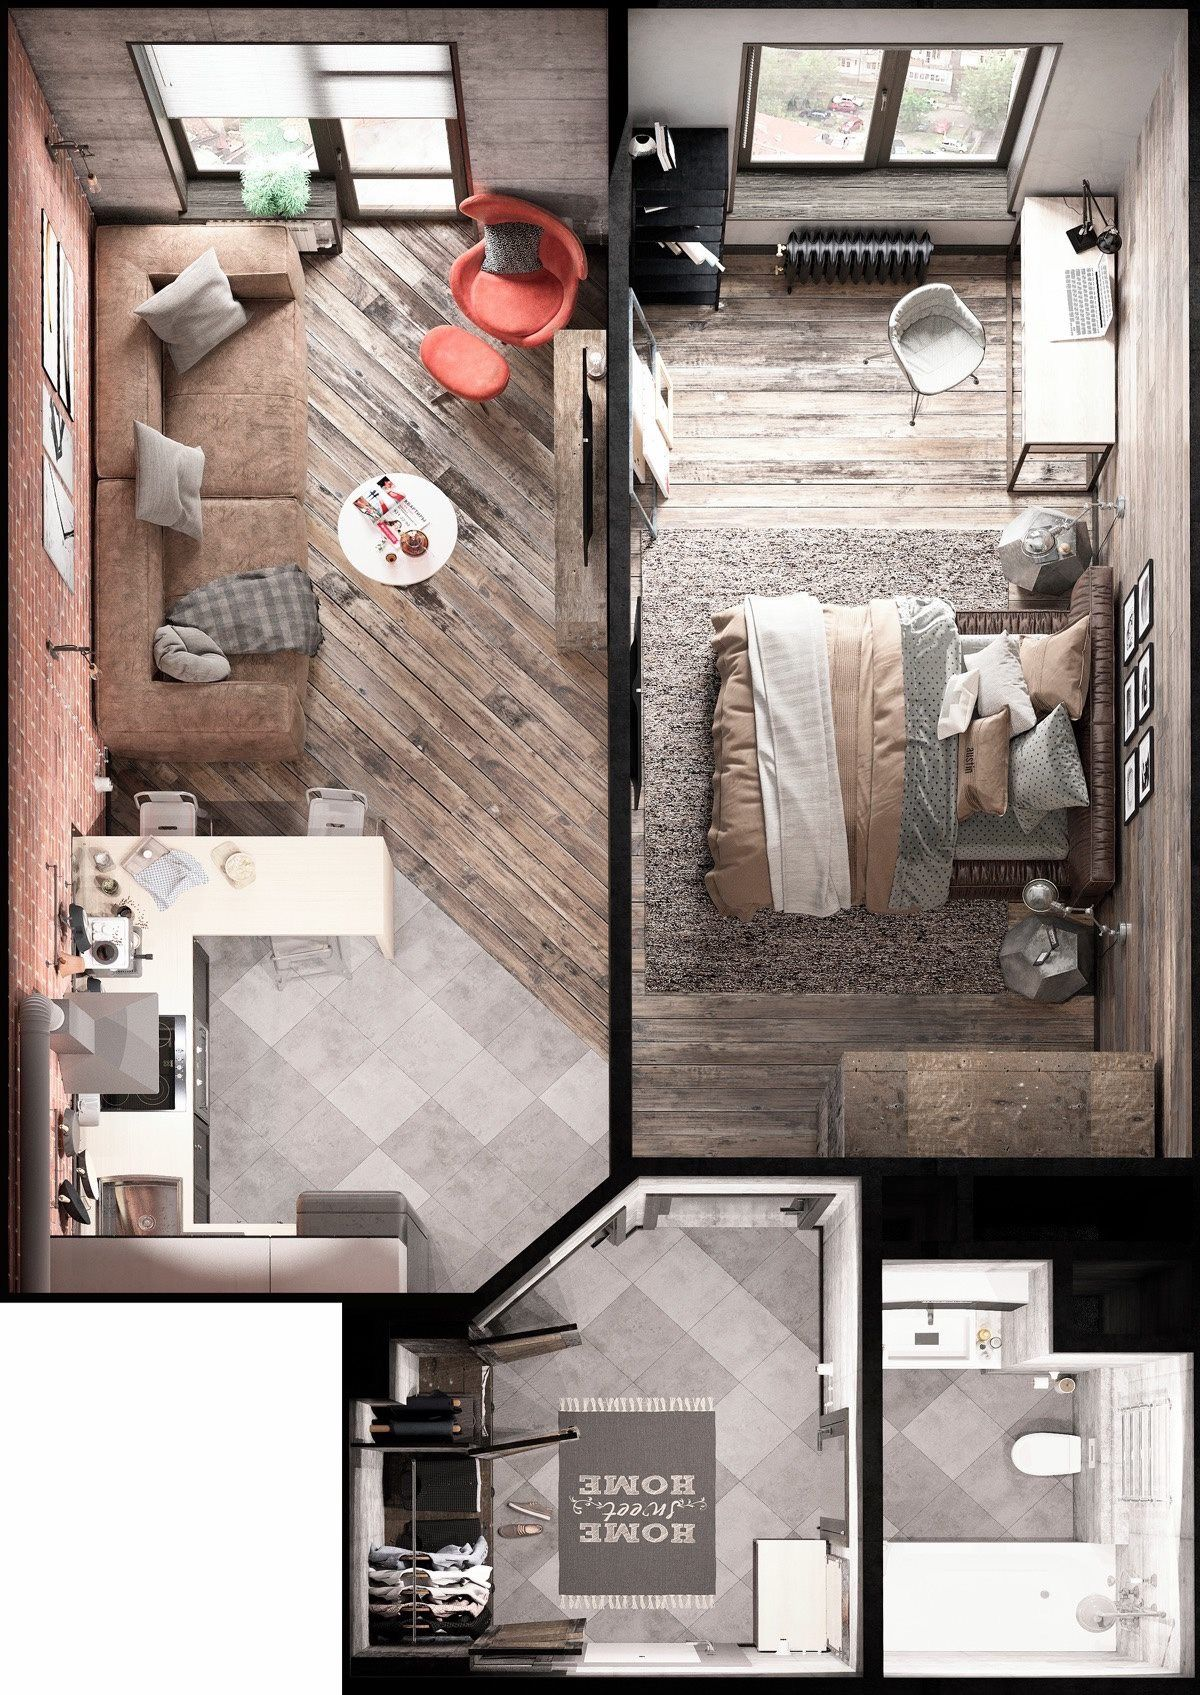 2 bedroom interior design pin by colleen downs on pimp my place  pinterest  room house and